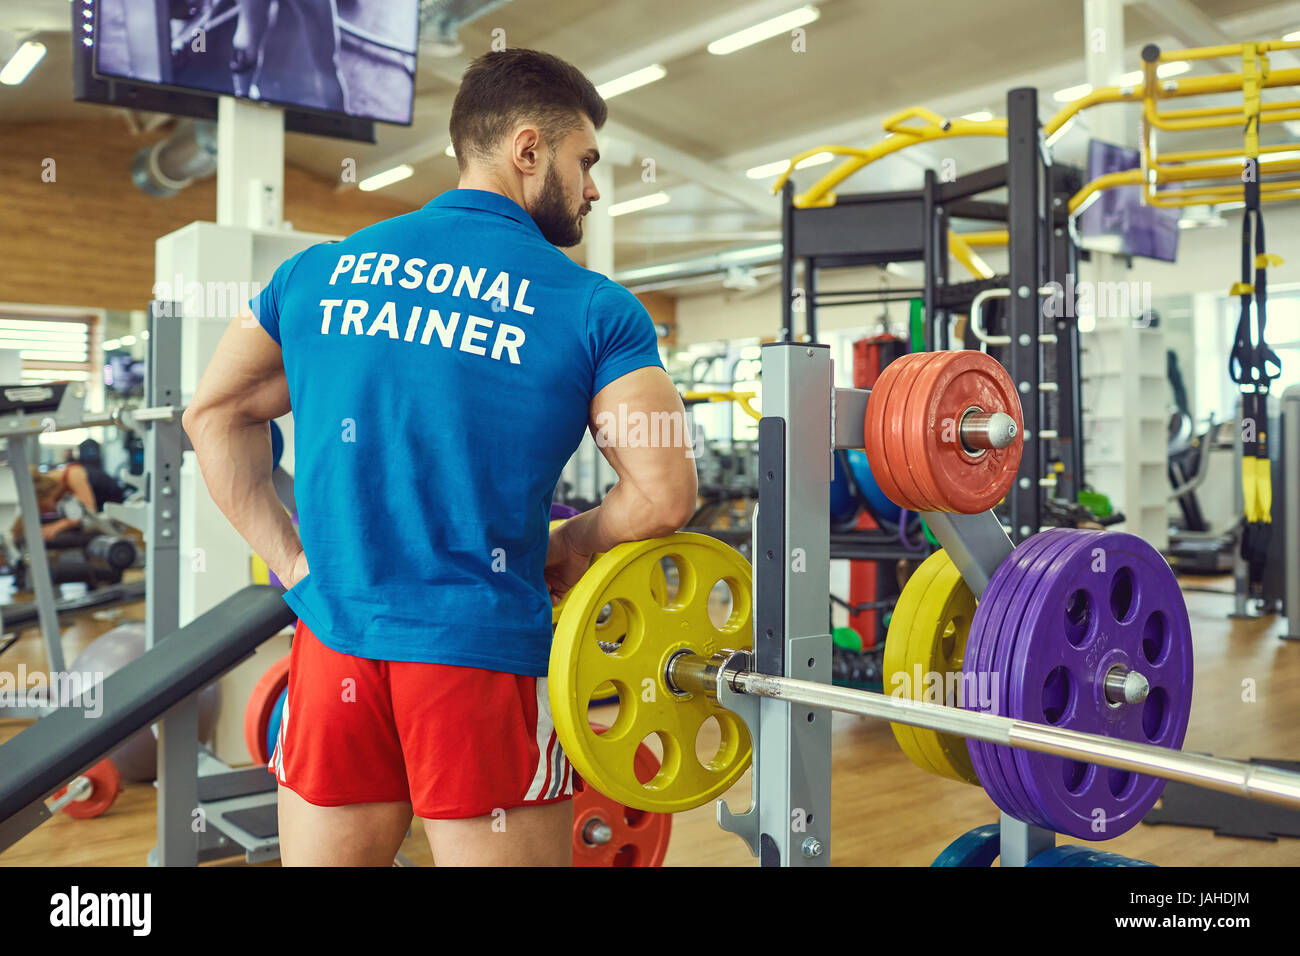 Personal trainer in the sports club. - Stock Image